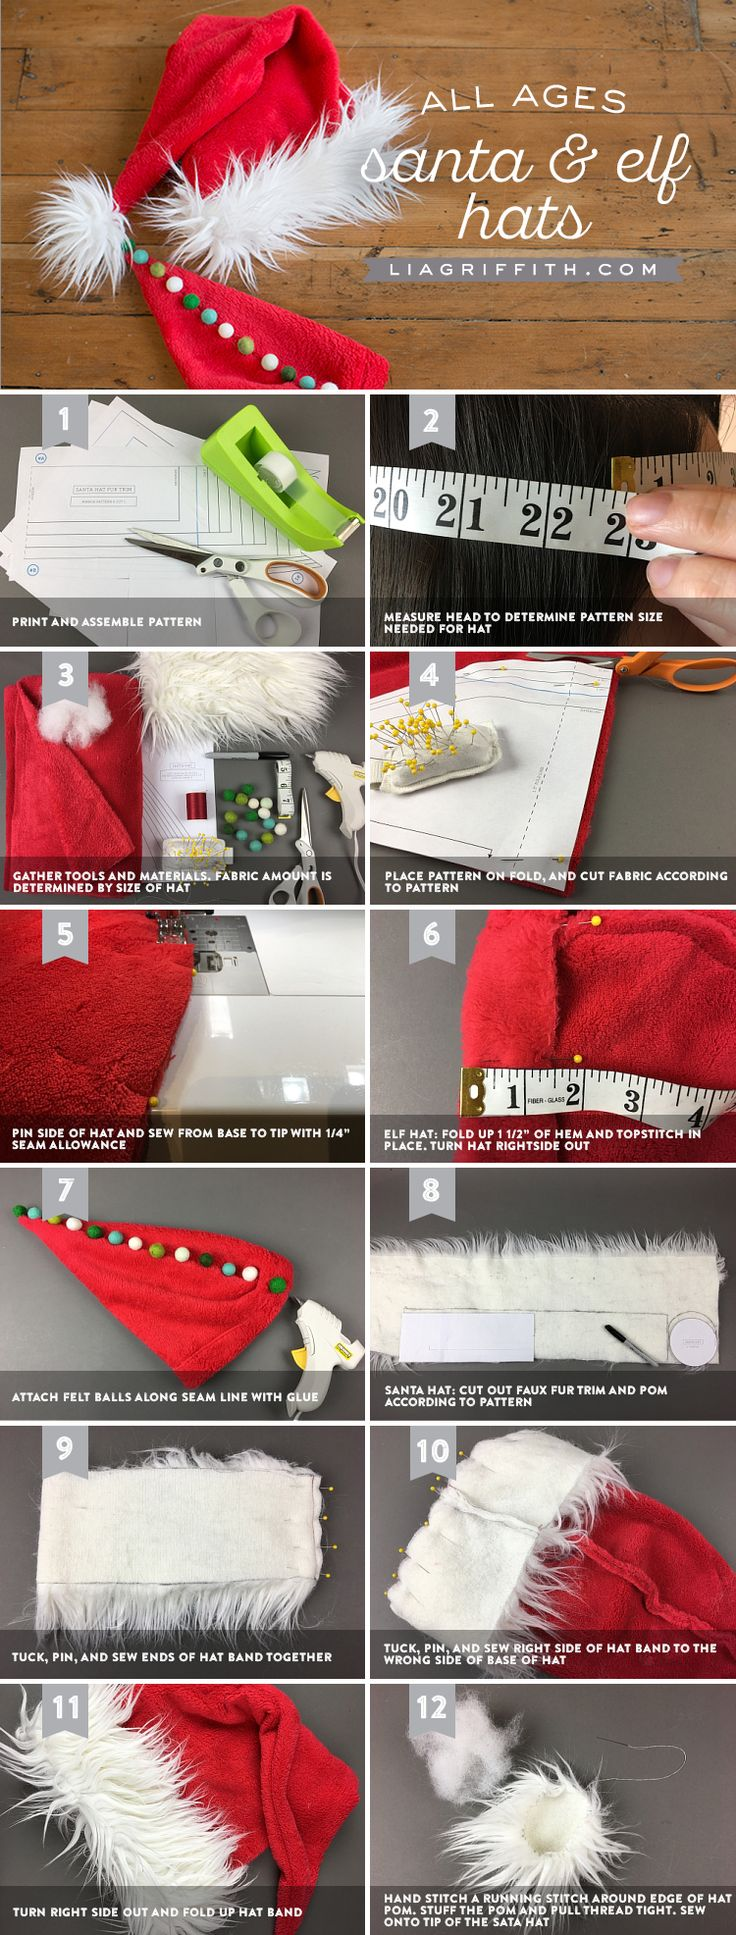 DIY Elf and Santa Hats - Lia Griffith